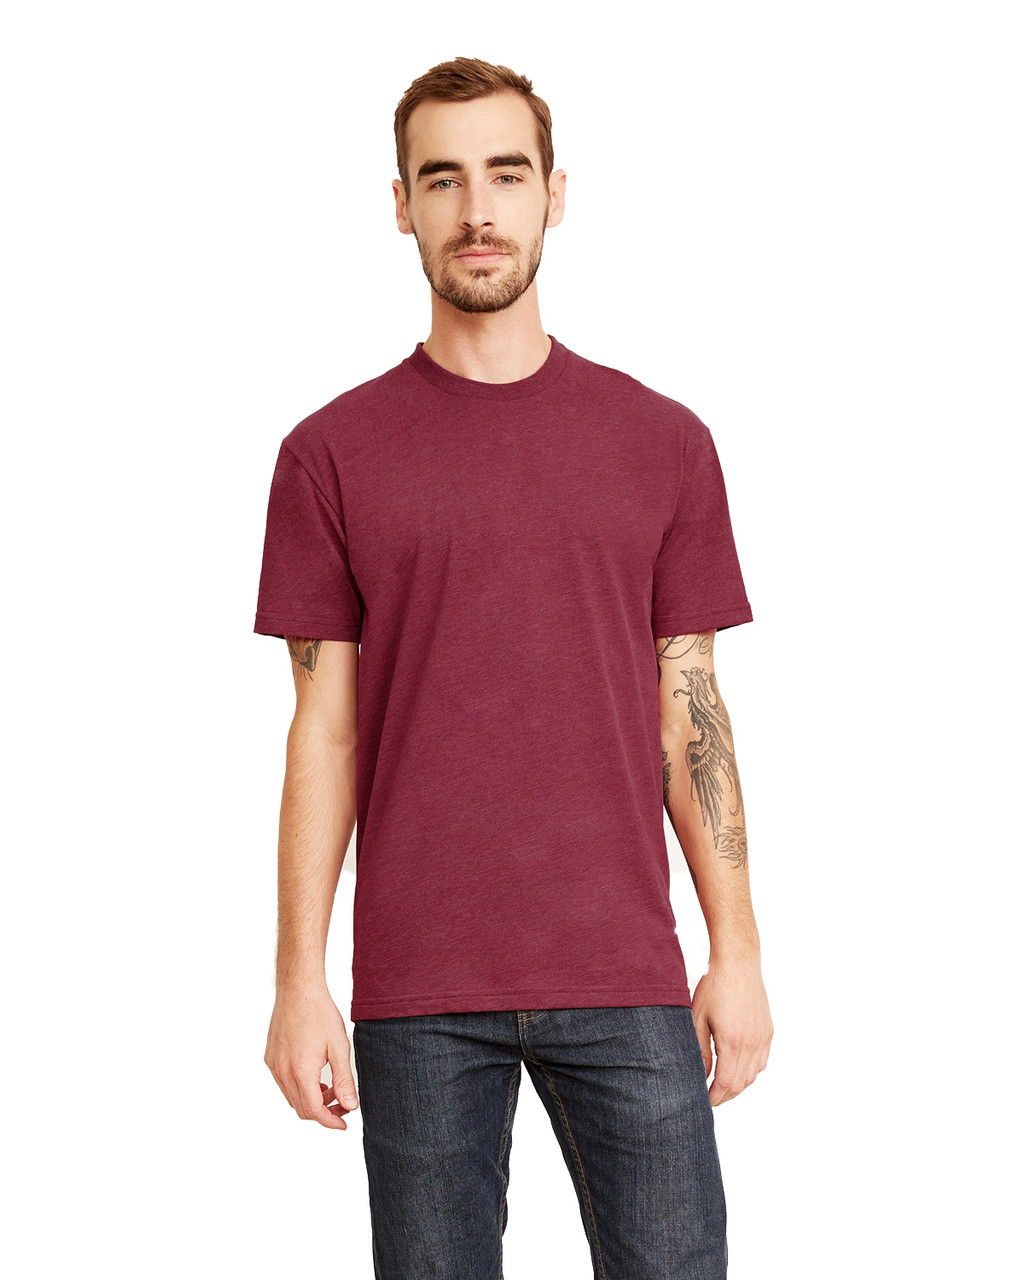 Heather Maroon - 6410 Next Level Men's Premium Fitted Sueded T-Shirt | Blankclothing.ca